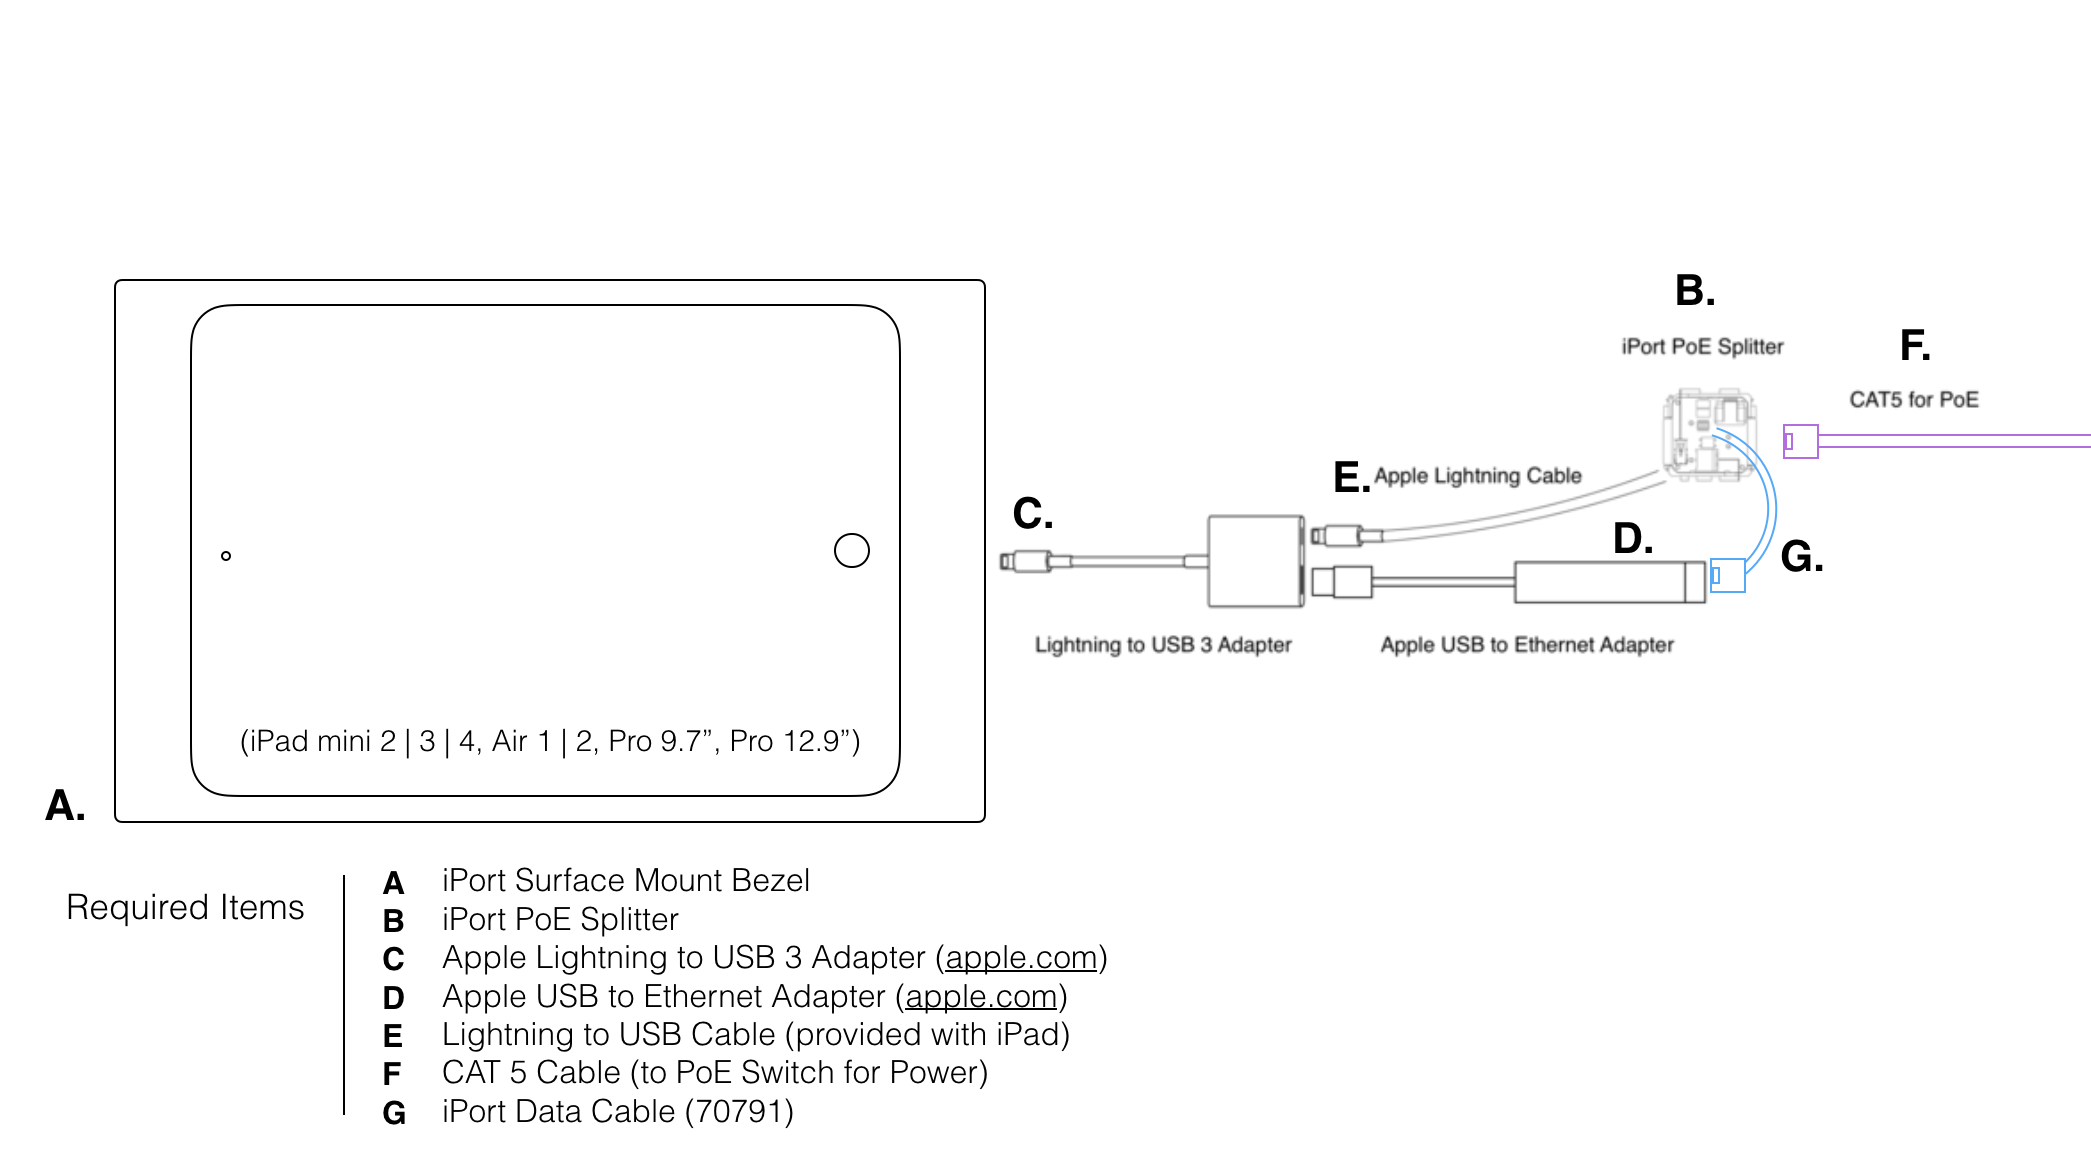 apple lightning cable wiring diagram surface mount     sonance iport  surface mount     sonance iport